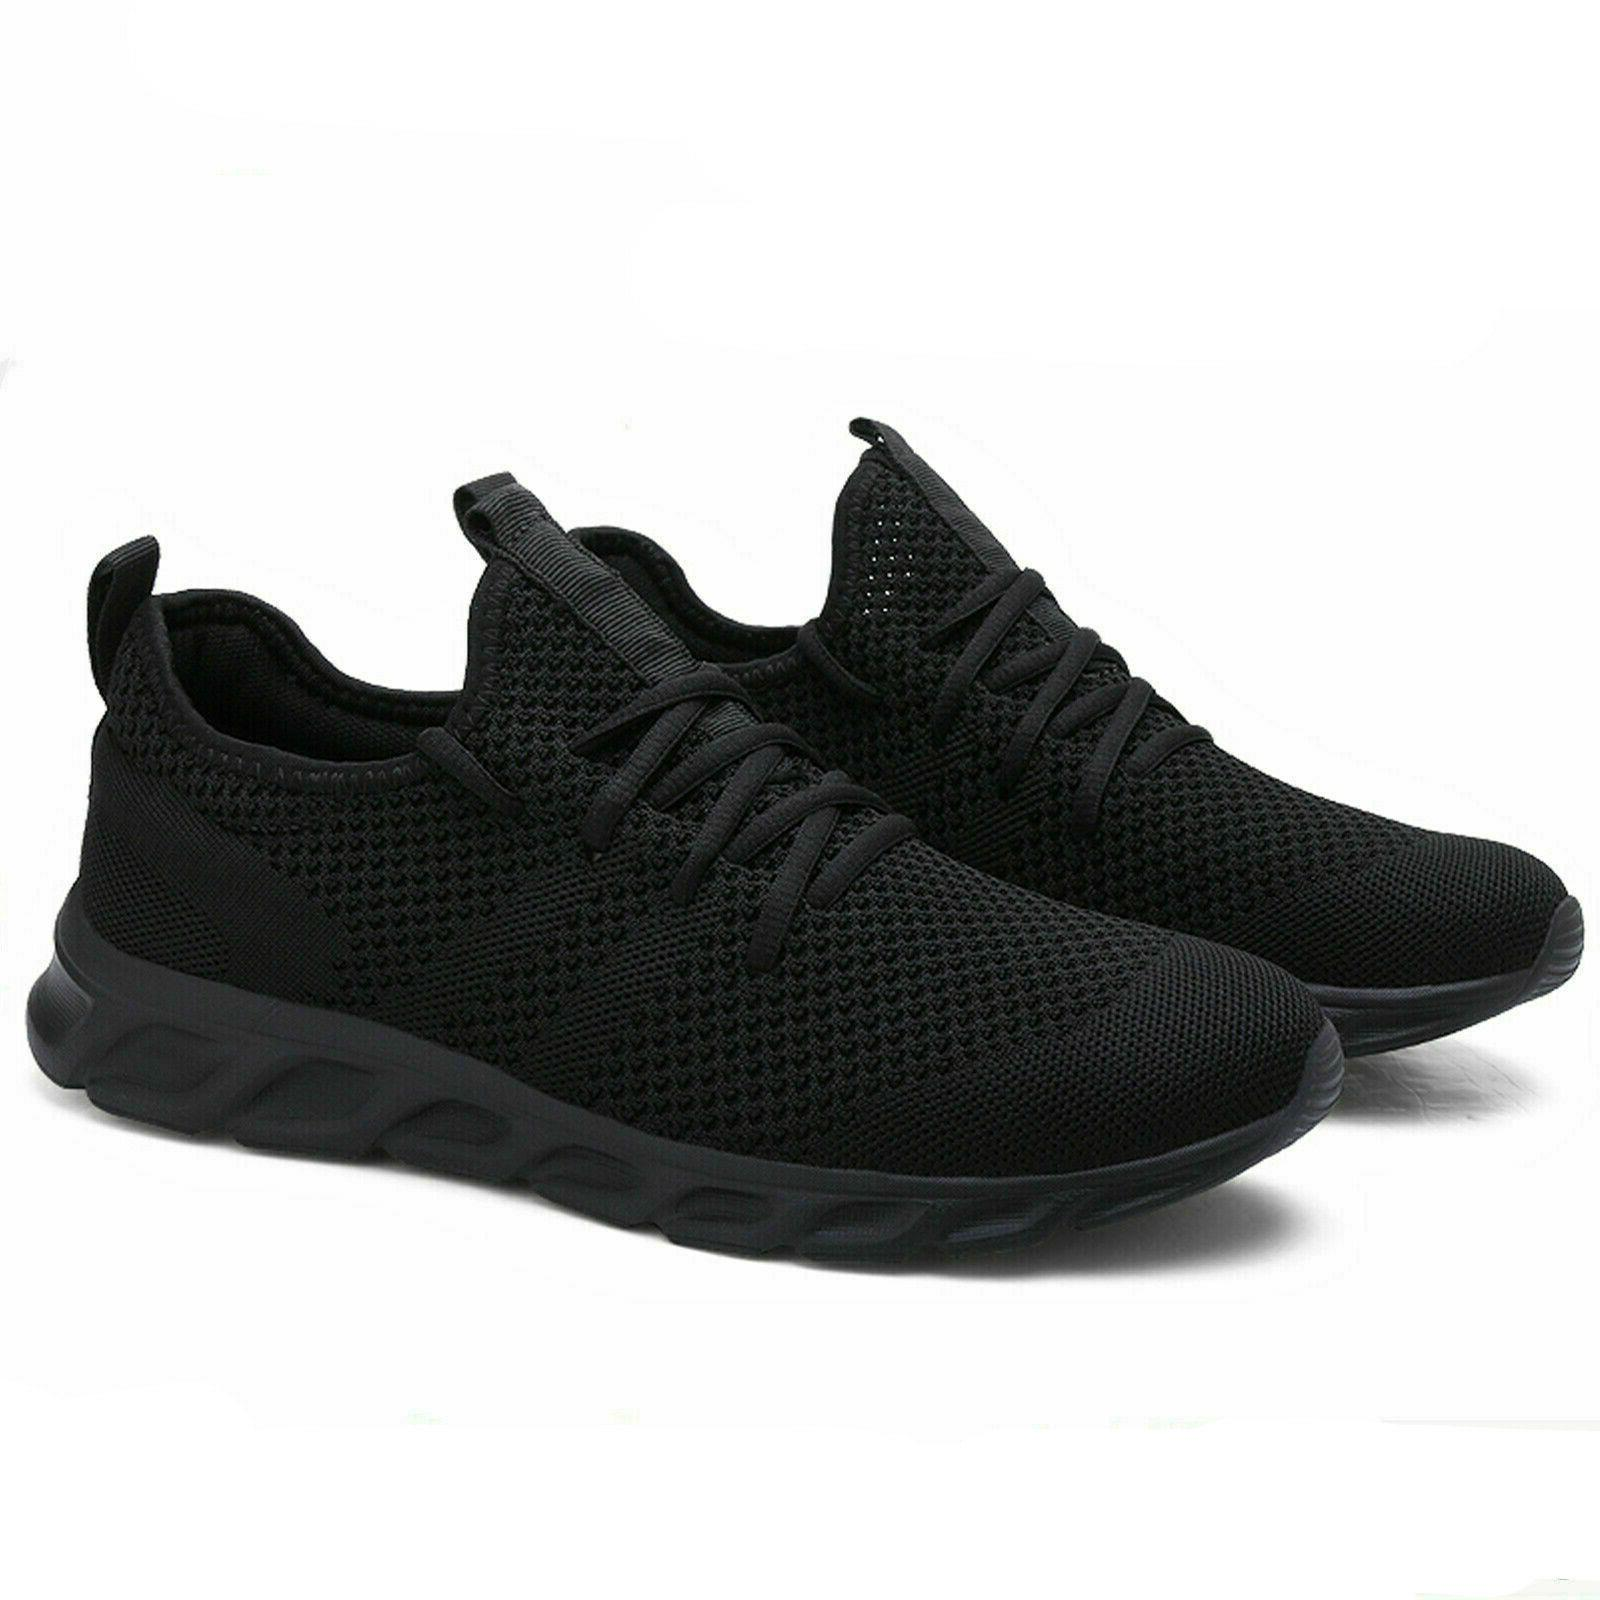 men s running breathable tennis shoes sports